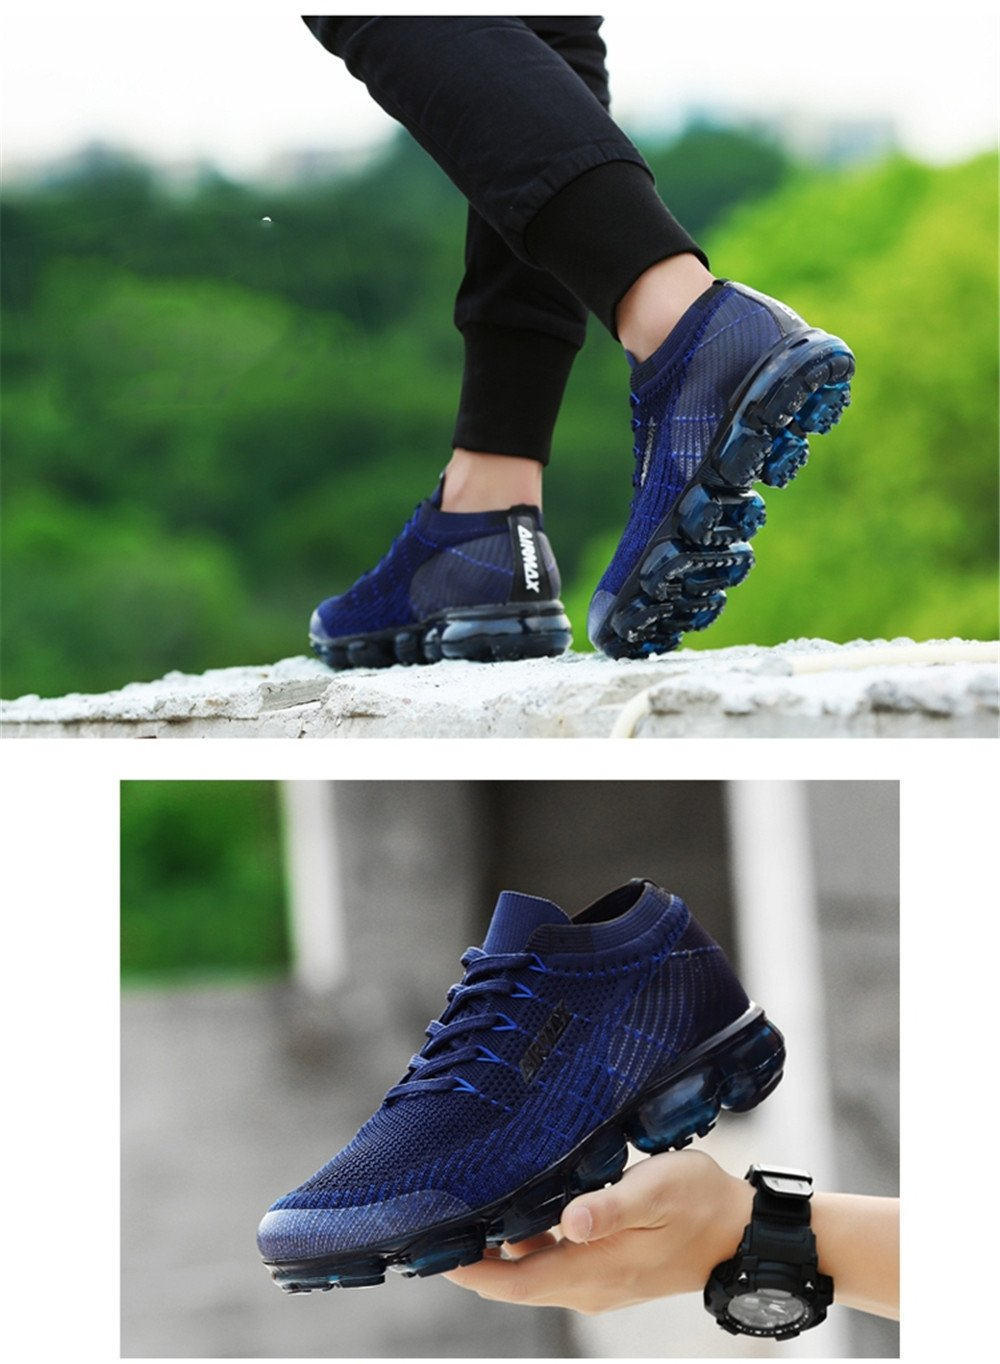 LUONEKE AIR 2018 Breathable Sneakers Sports Shoes for Men Woman for Running Boys Fitness and Leisure B07CSMQW7H US_8/EUR_41/CM_25.5|Blue